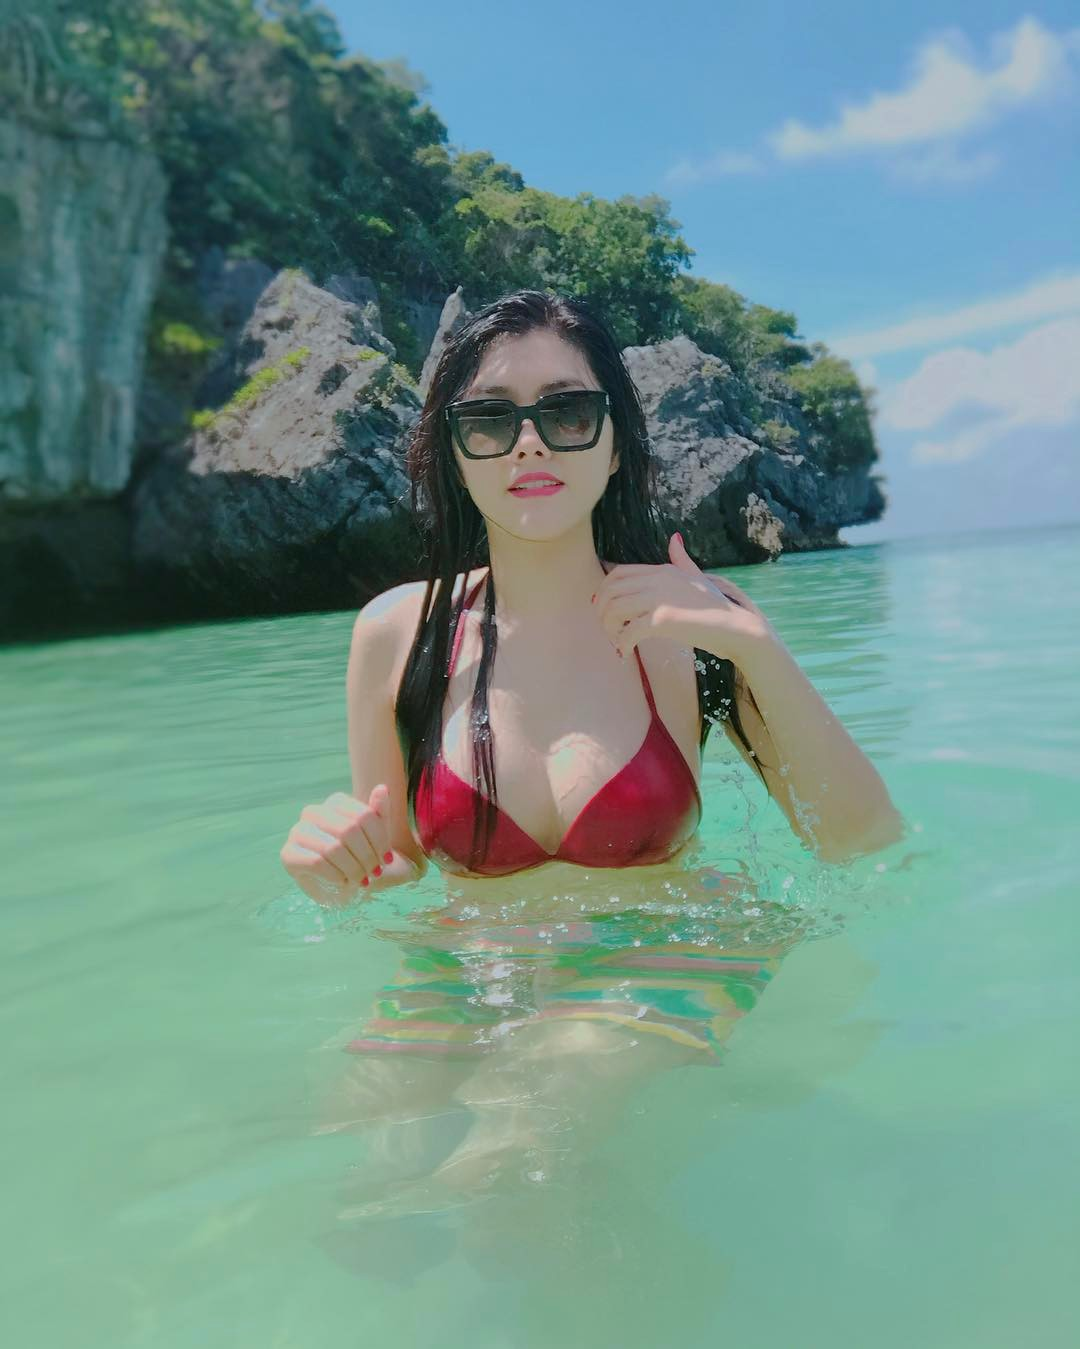 chi 3 giay khoe noi y, chan dai cao 1m84 khien bao anh dien dao hinh anh 3